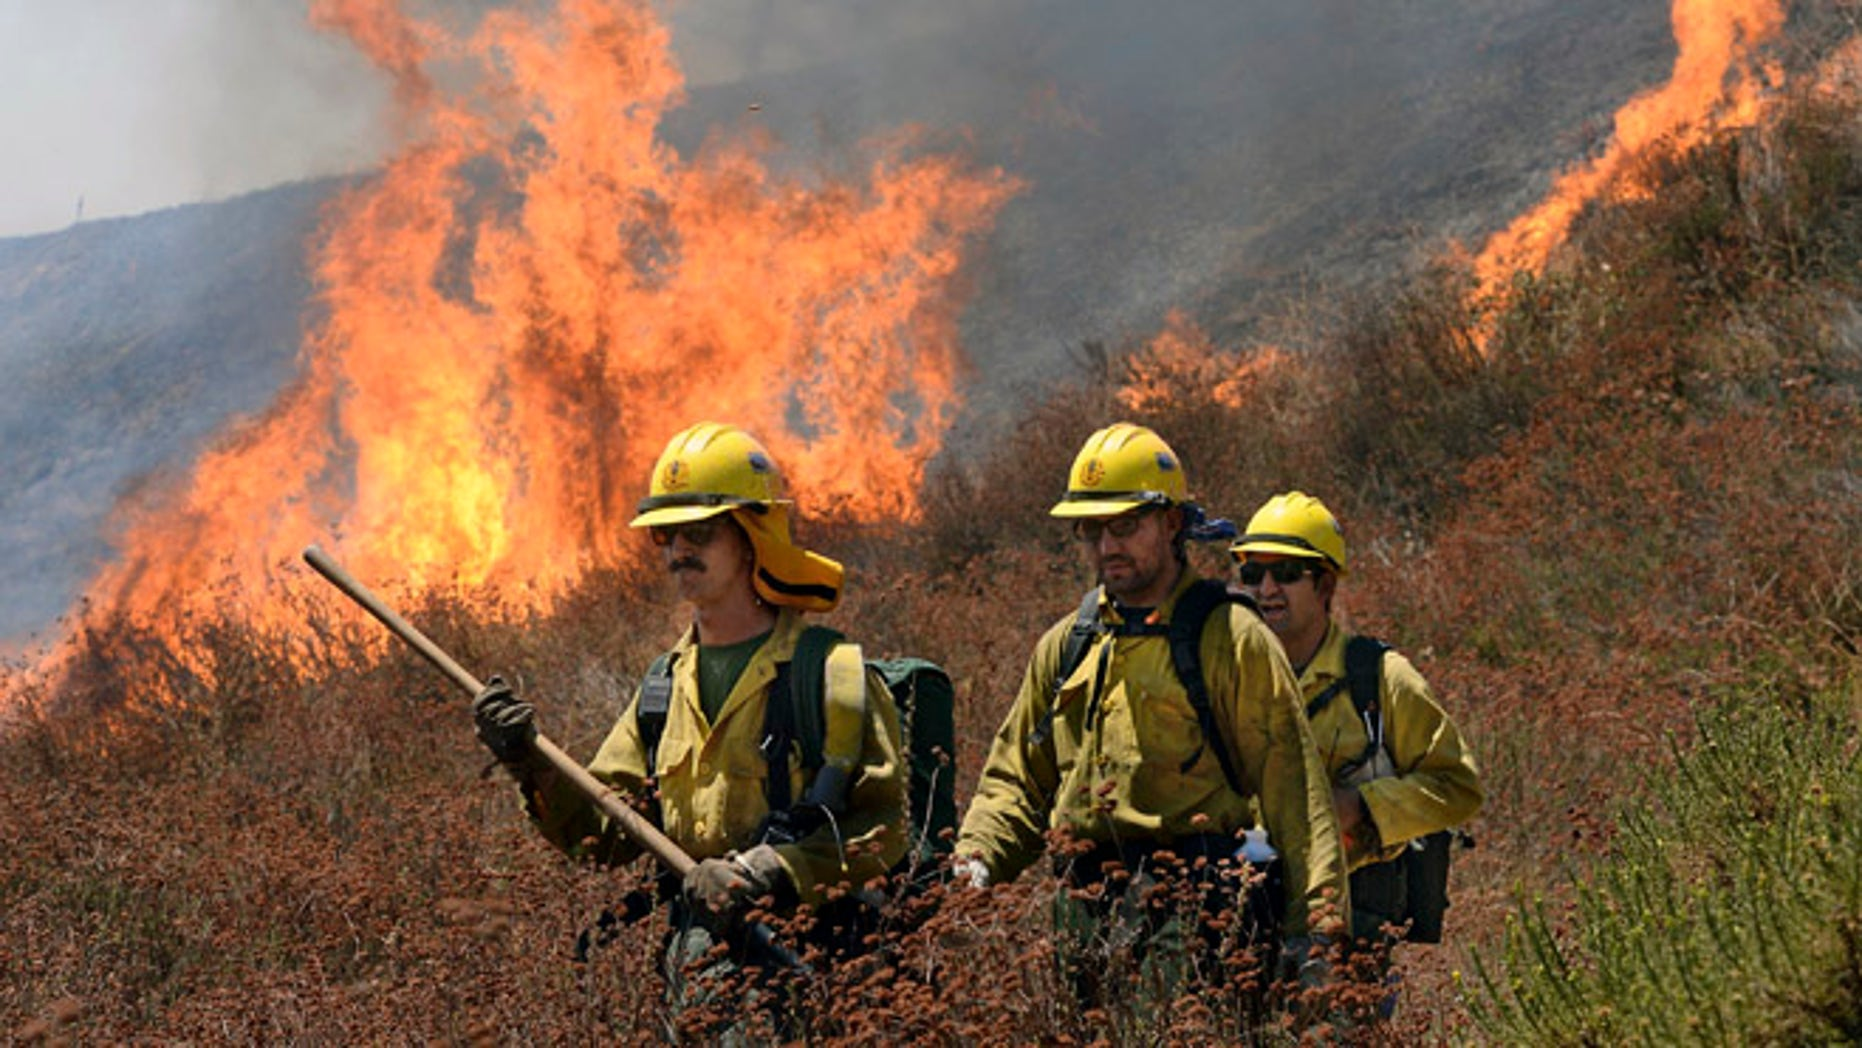 Firefighters battle the Bluecut Fire along Swarthout Canyon Road in the Cajon Pass, north of San Bernardino, Calif., Tuesday August 16, 2016. The blaze 60 miles east of Los Angeles has burned what appear to be several ranch outbuildings and forced evacuations in and around Lytle Creek. (Will Lester/The Sun via AP) MANDATORY CREDIT